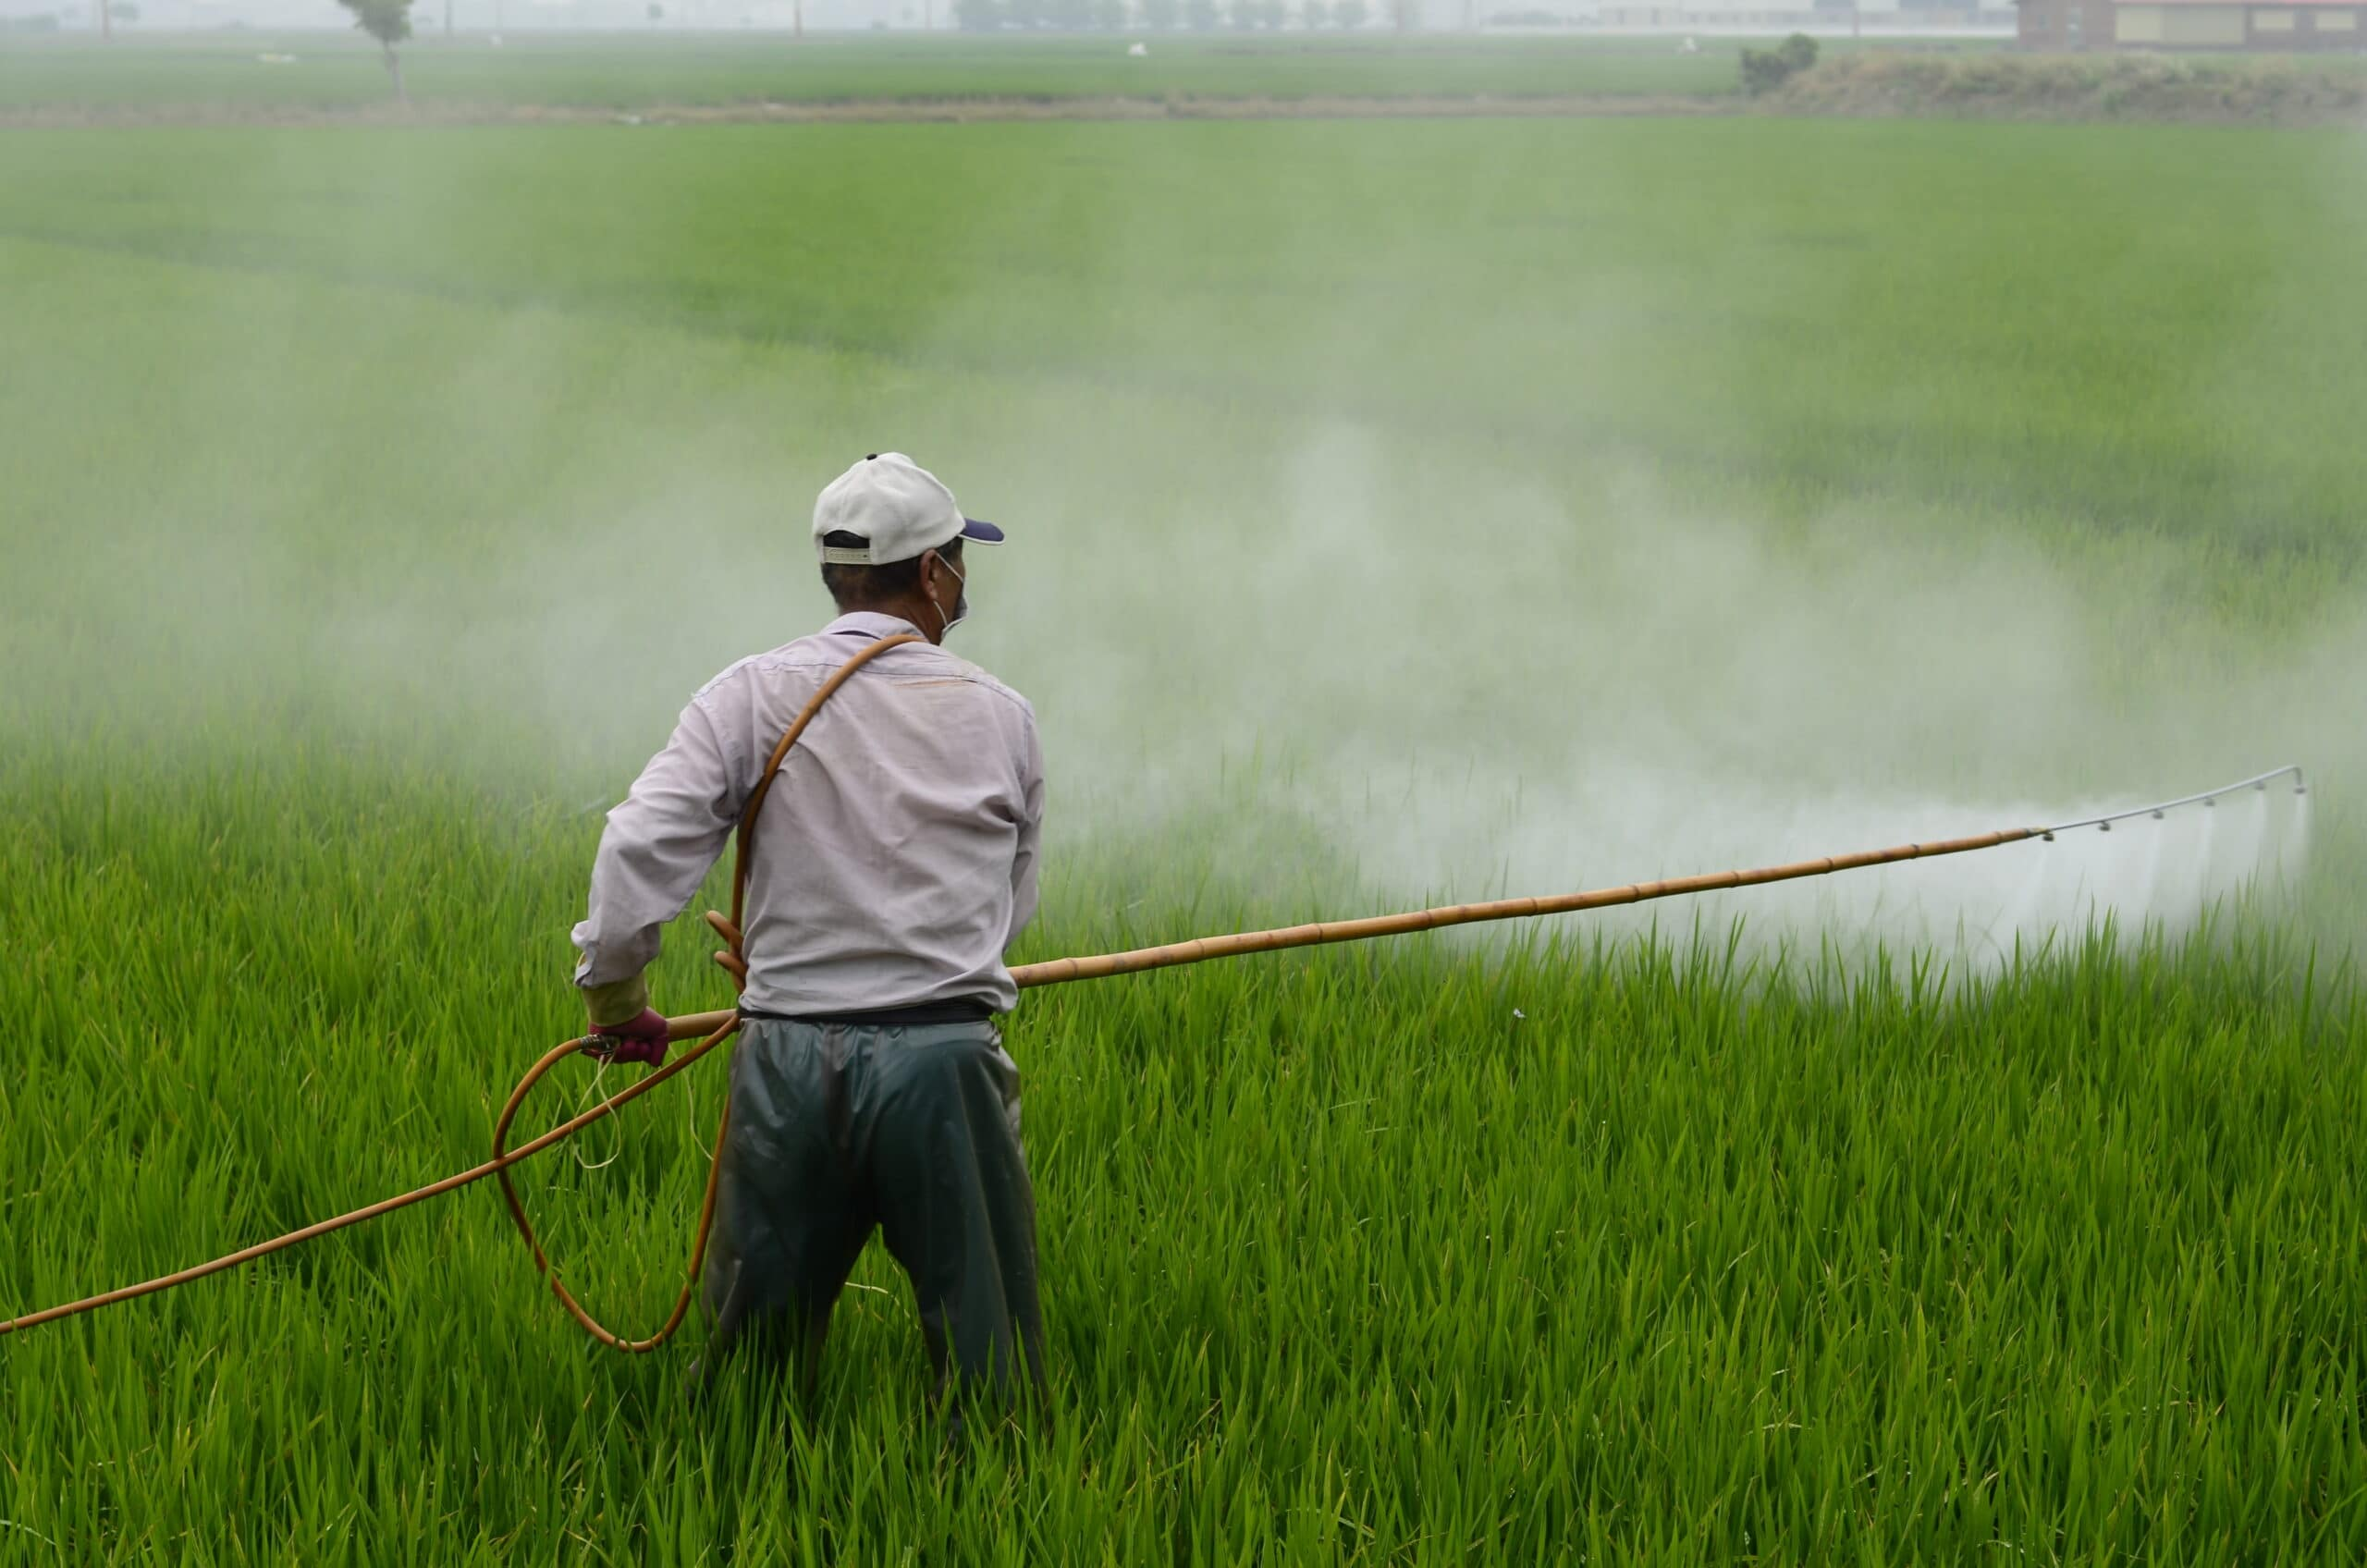 Paraquat sprayer being exposes to harmful chemicals